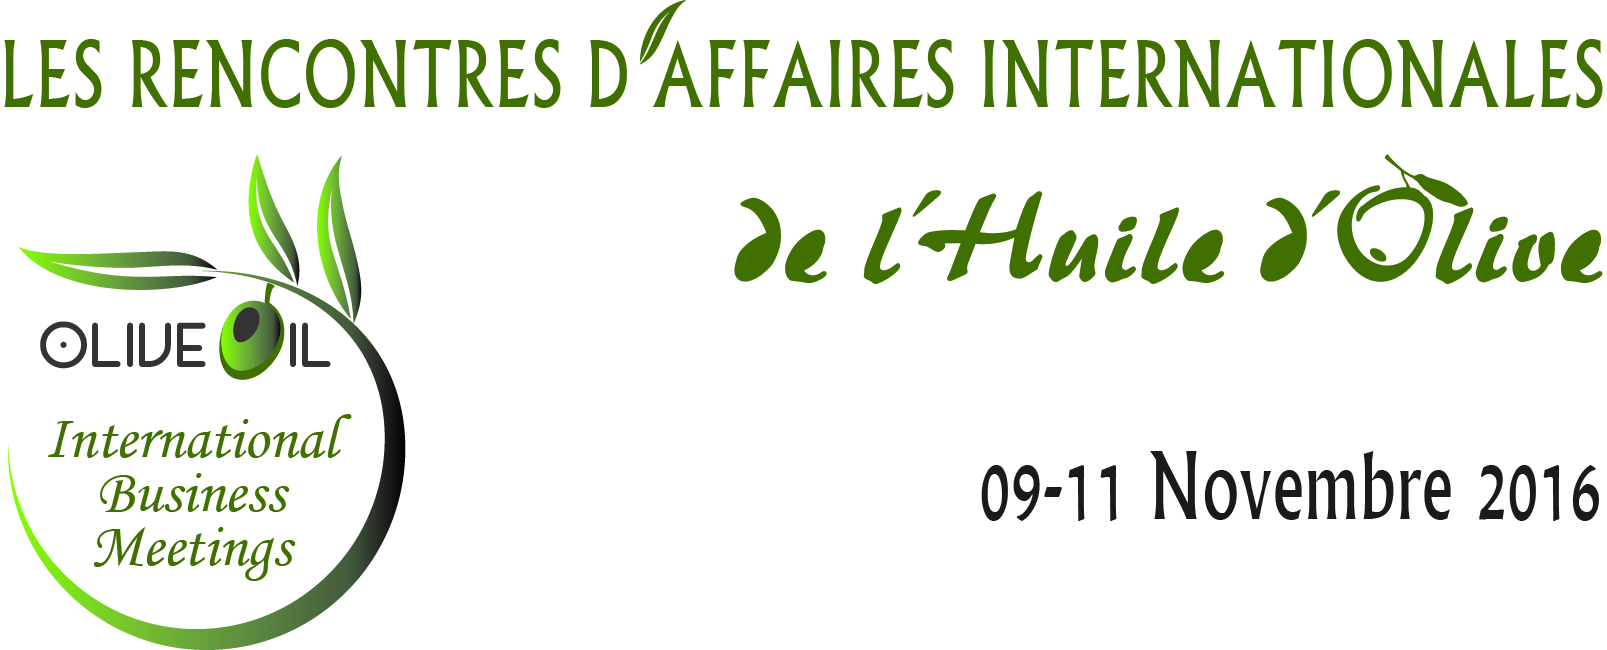 Les rencontres d'affaires internationales de l'huile d'olive